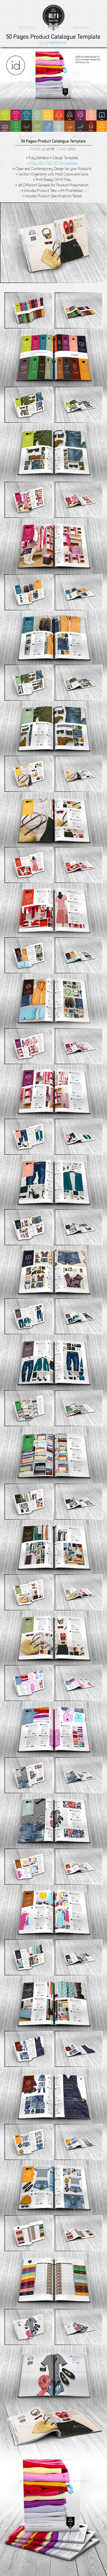 GraphicRiver 50 Pages Product Catalogue Template 8873568